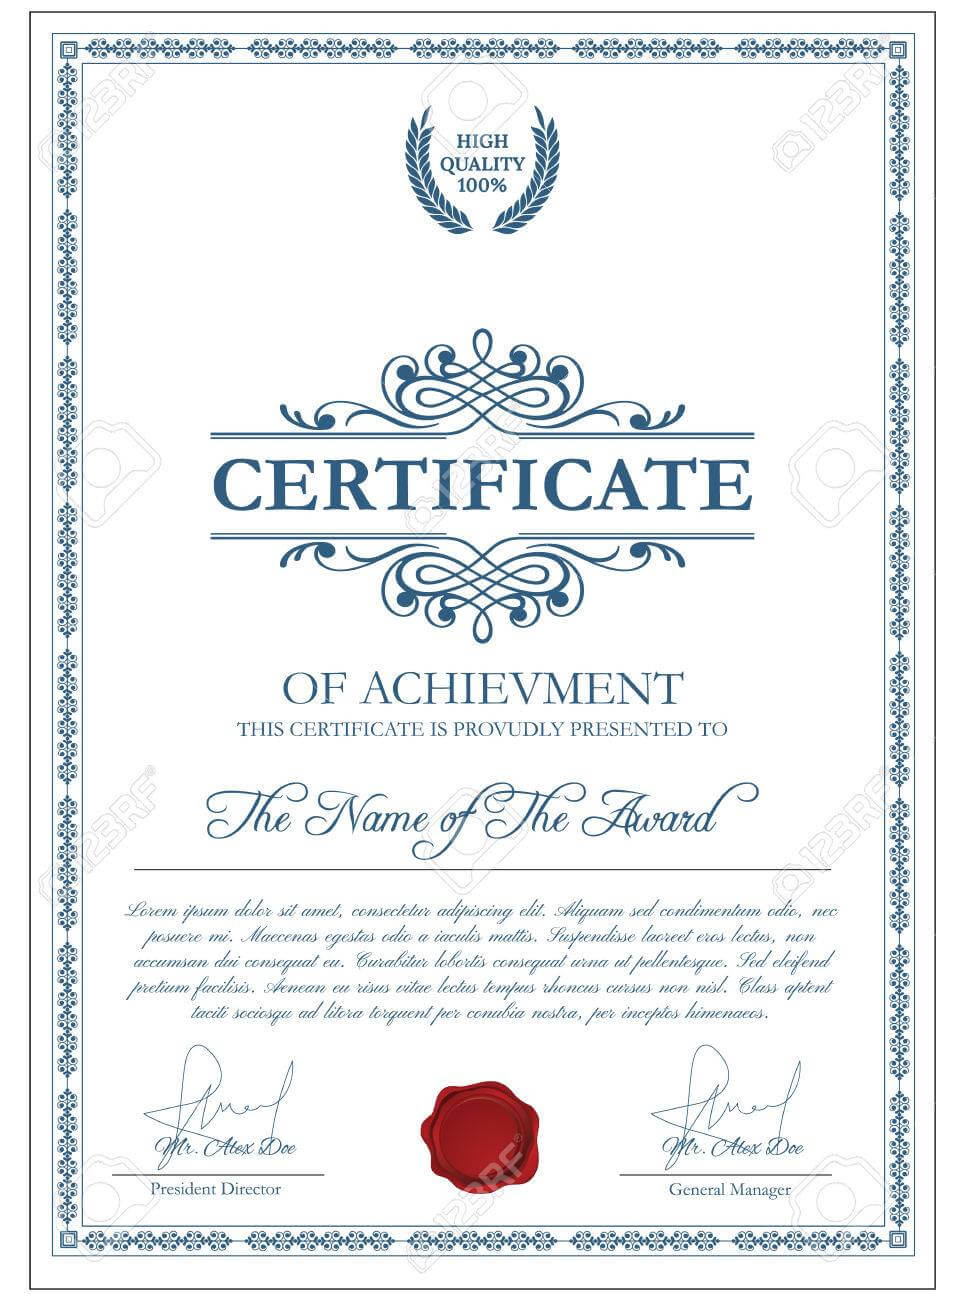 Certificate Template With Guilloche Elements. Blue Diploma Border.. Regarding Validation Certificate Template